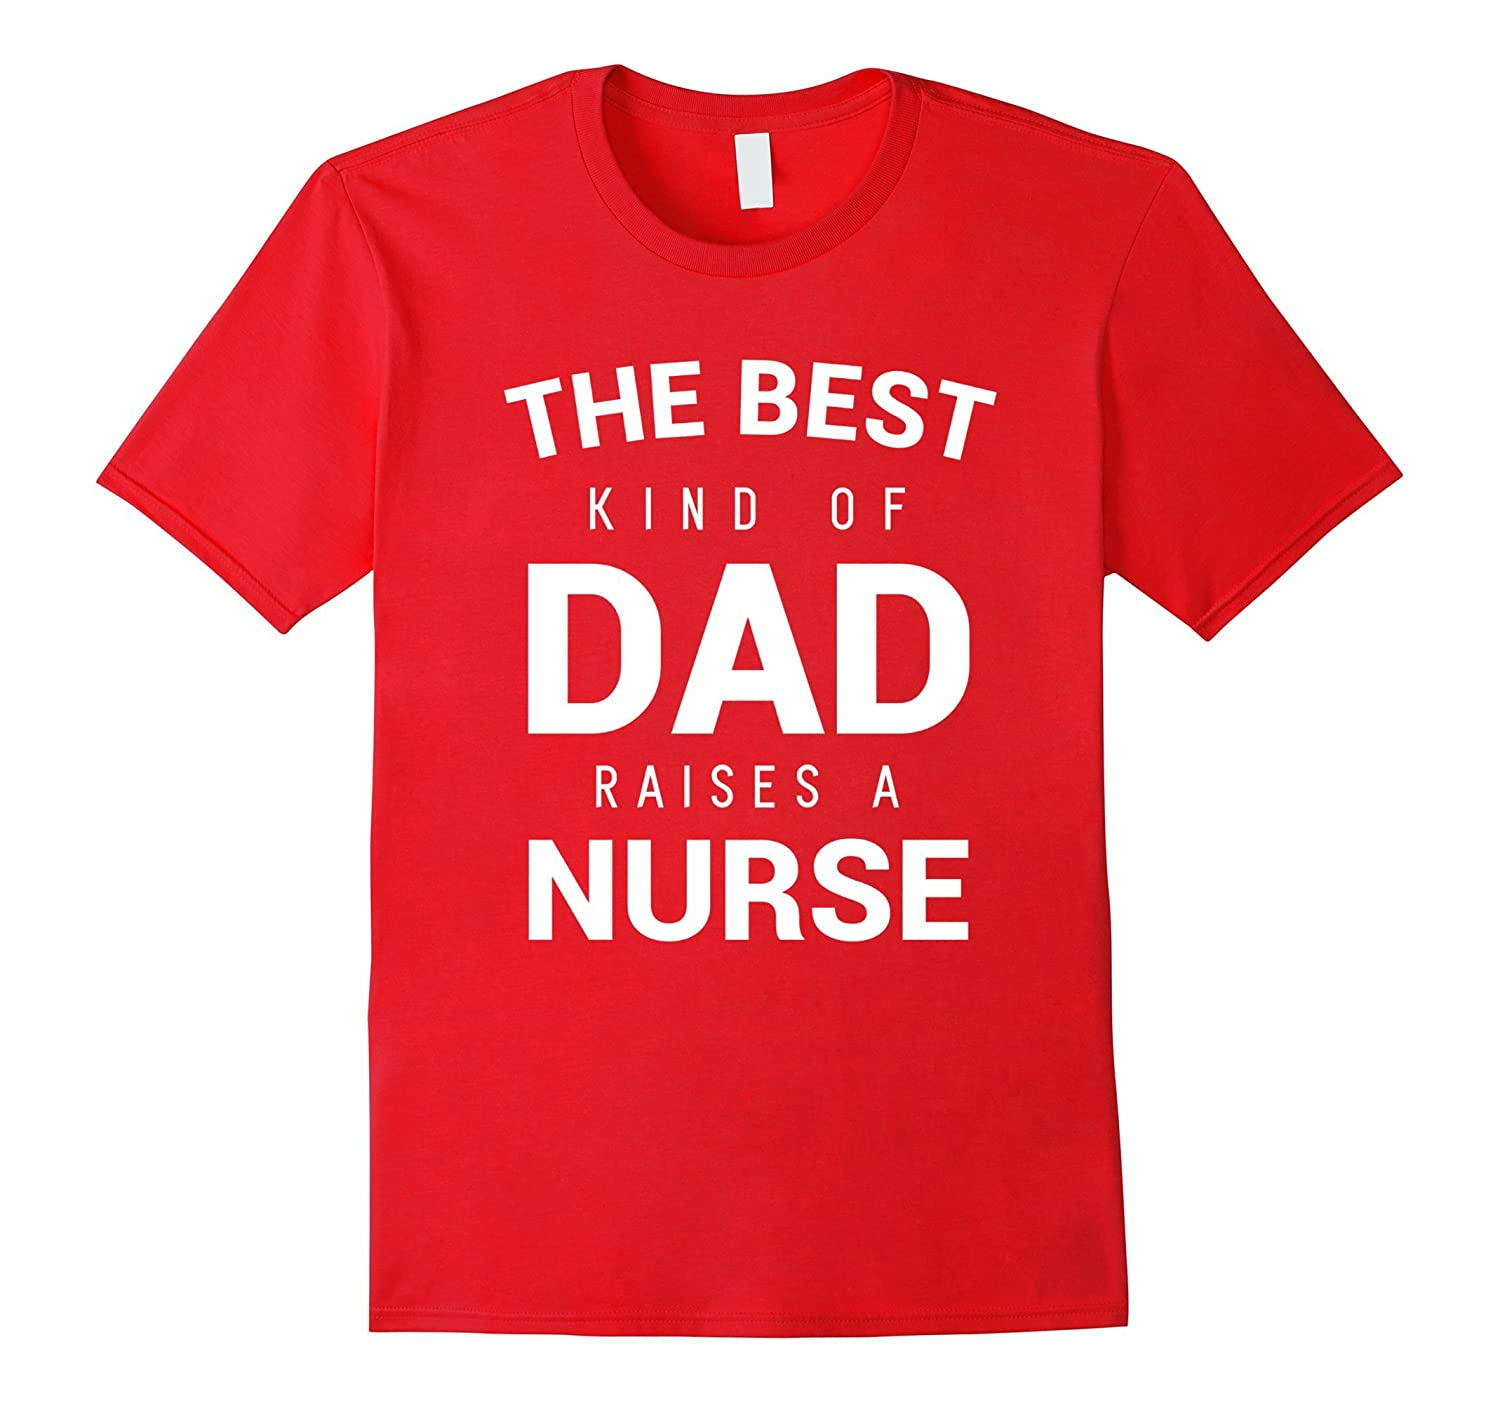 Best Dad Raises a Nurse Shirt Fathers Day Gift from Daughter-PL